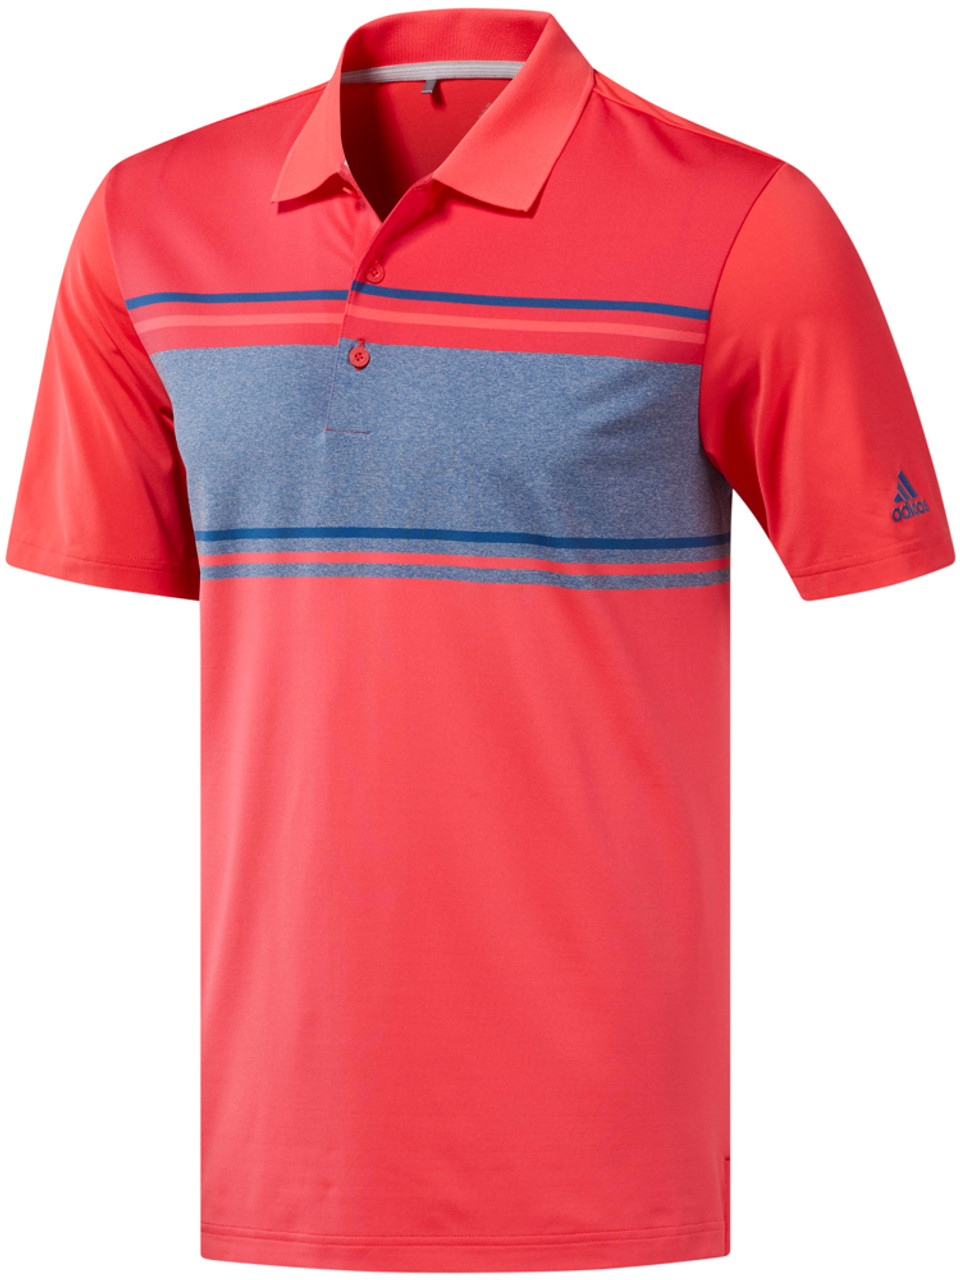 99fafb3a30bf Adidas Ultimate 2.0 Classic Merch Polo - Shock Red/Dk Marine